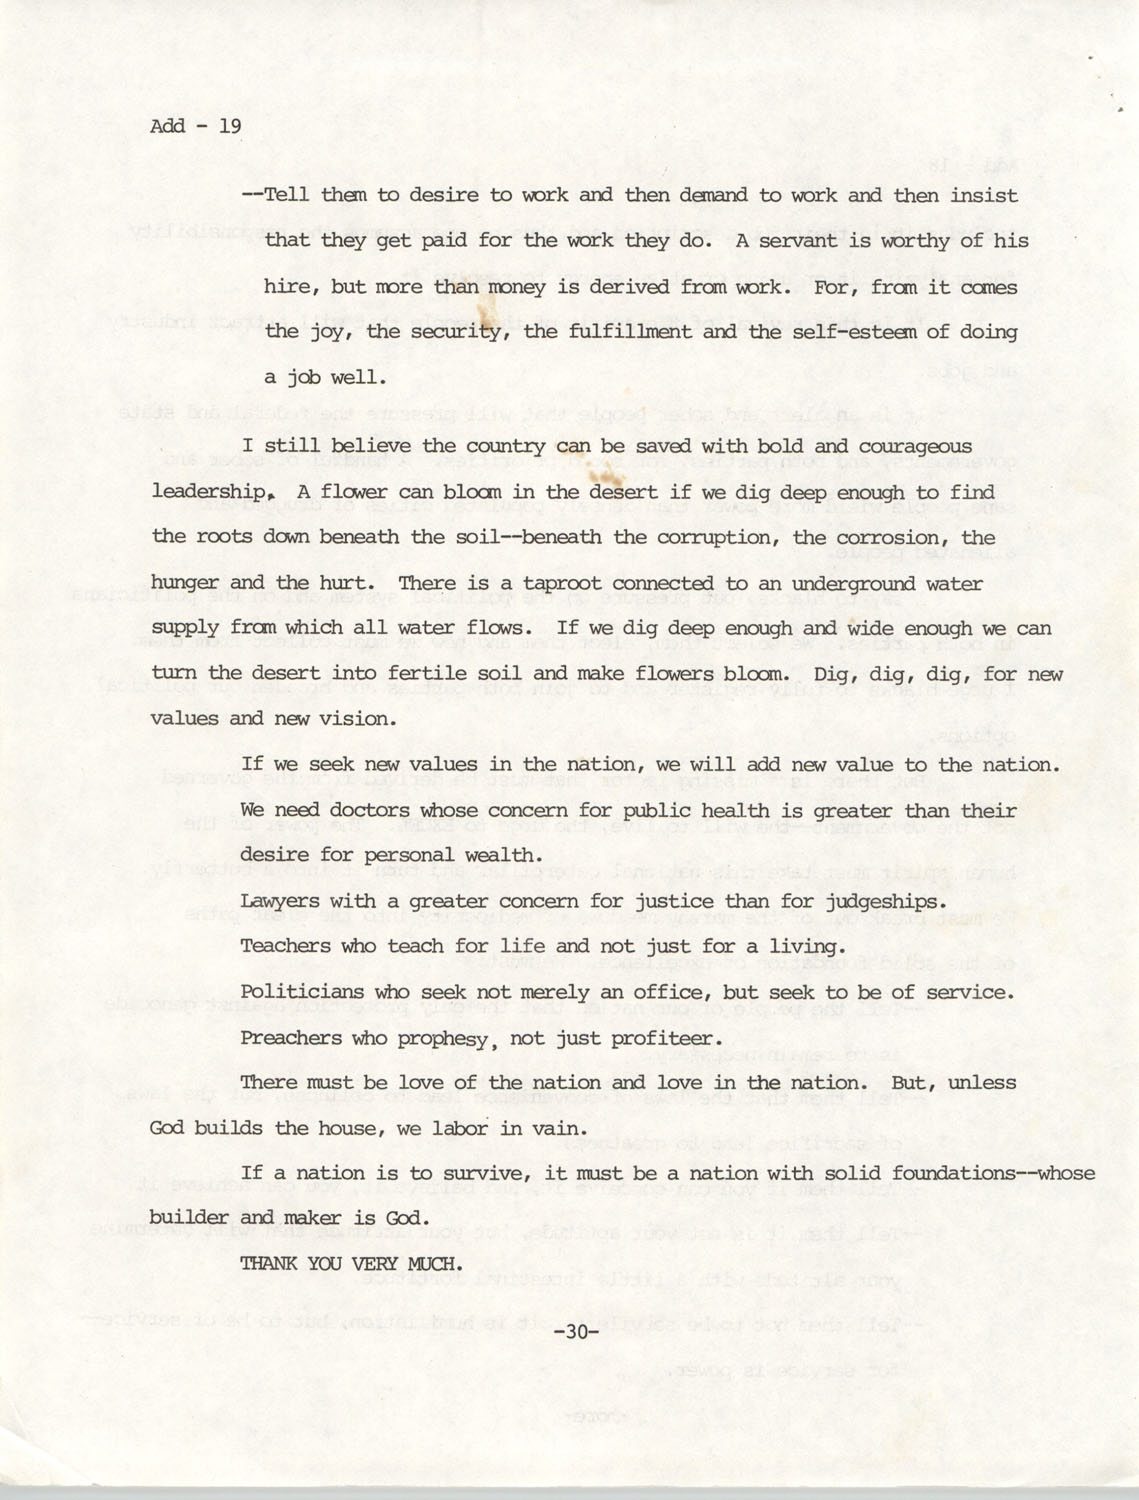 Speech Before the Republican National Committee, Page 19